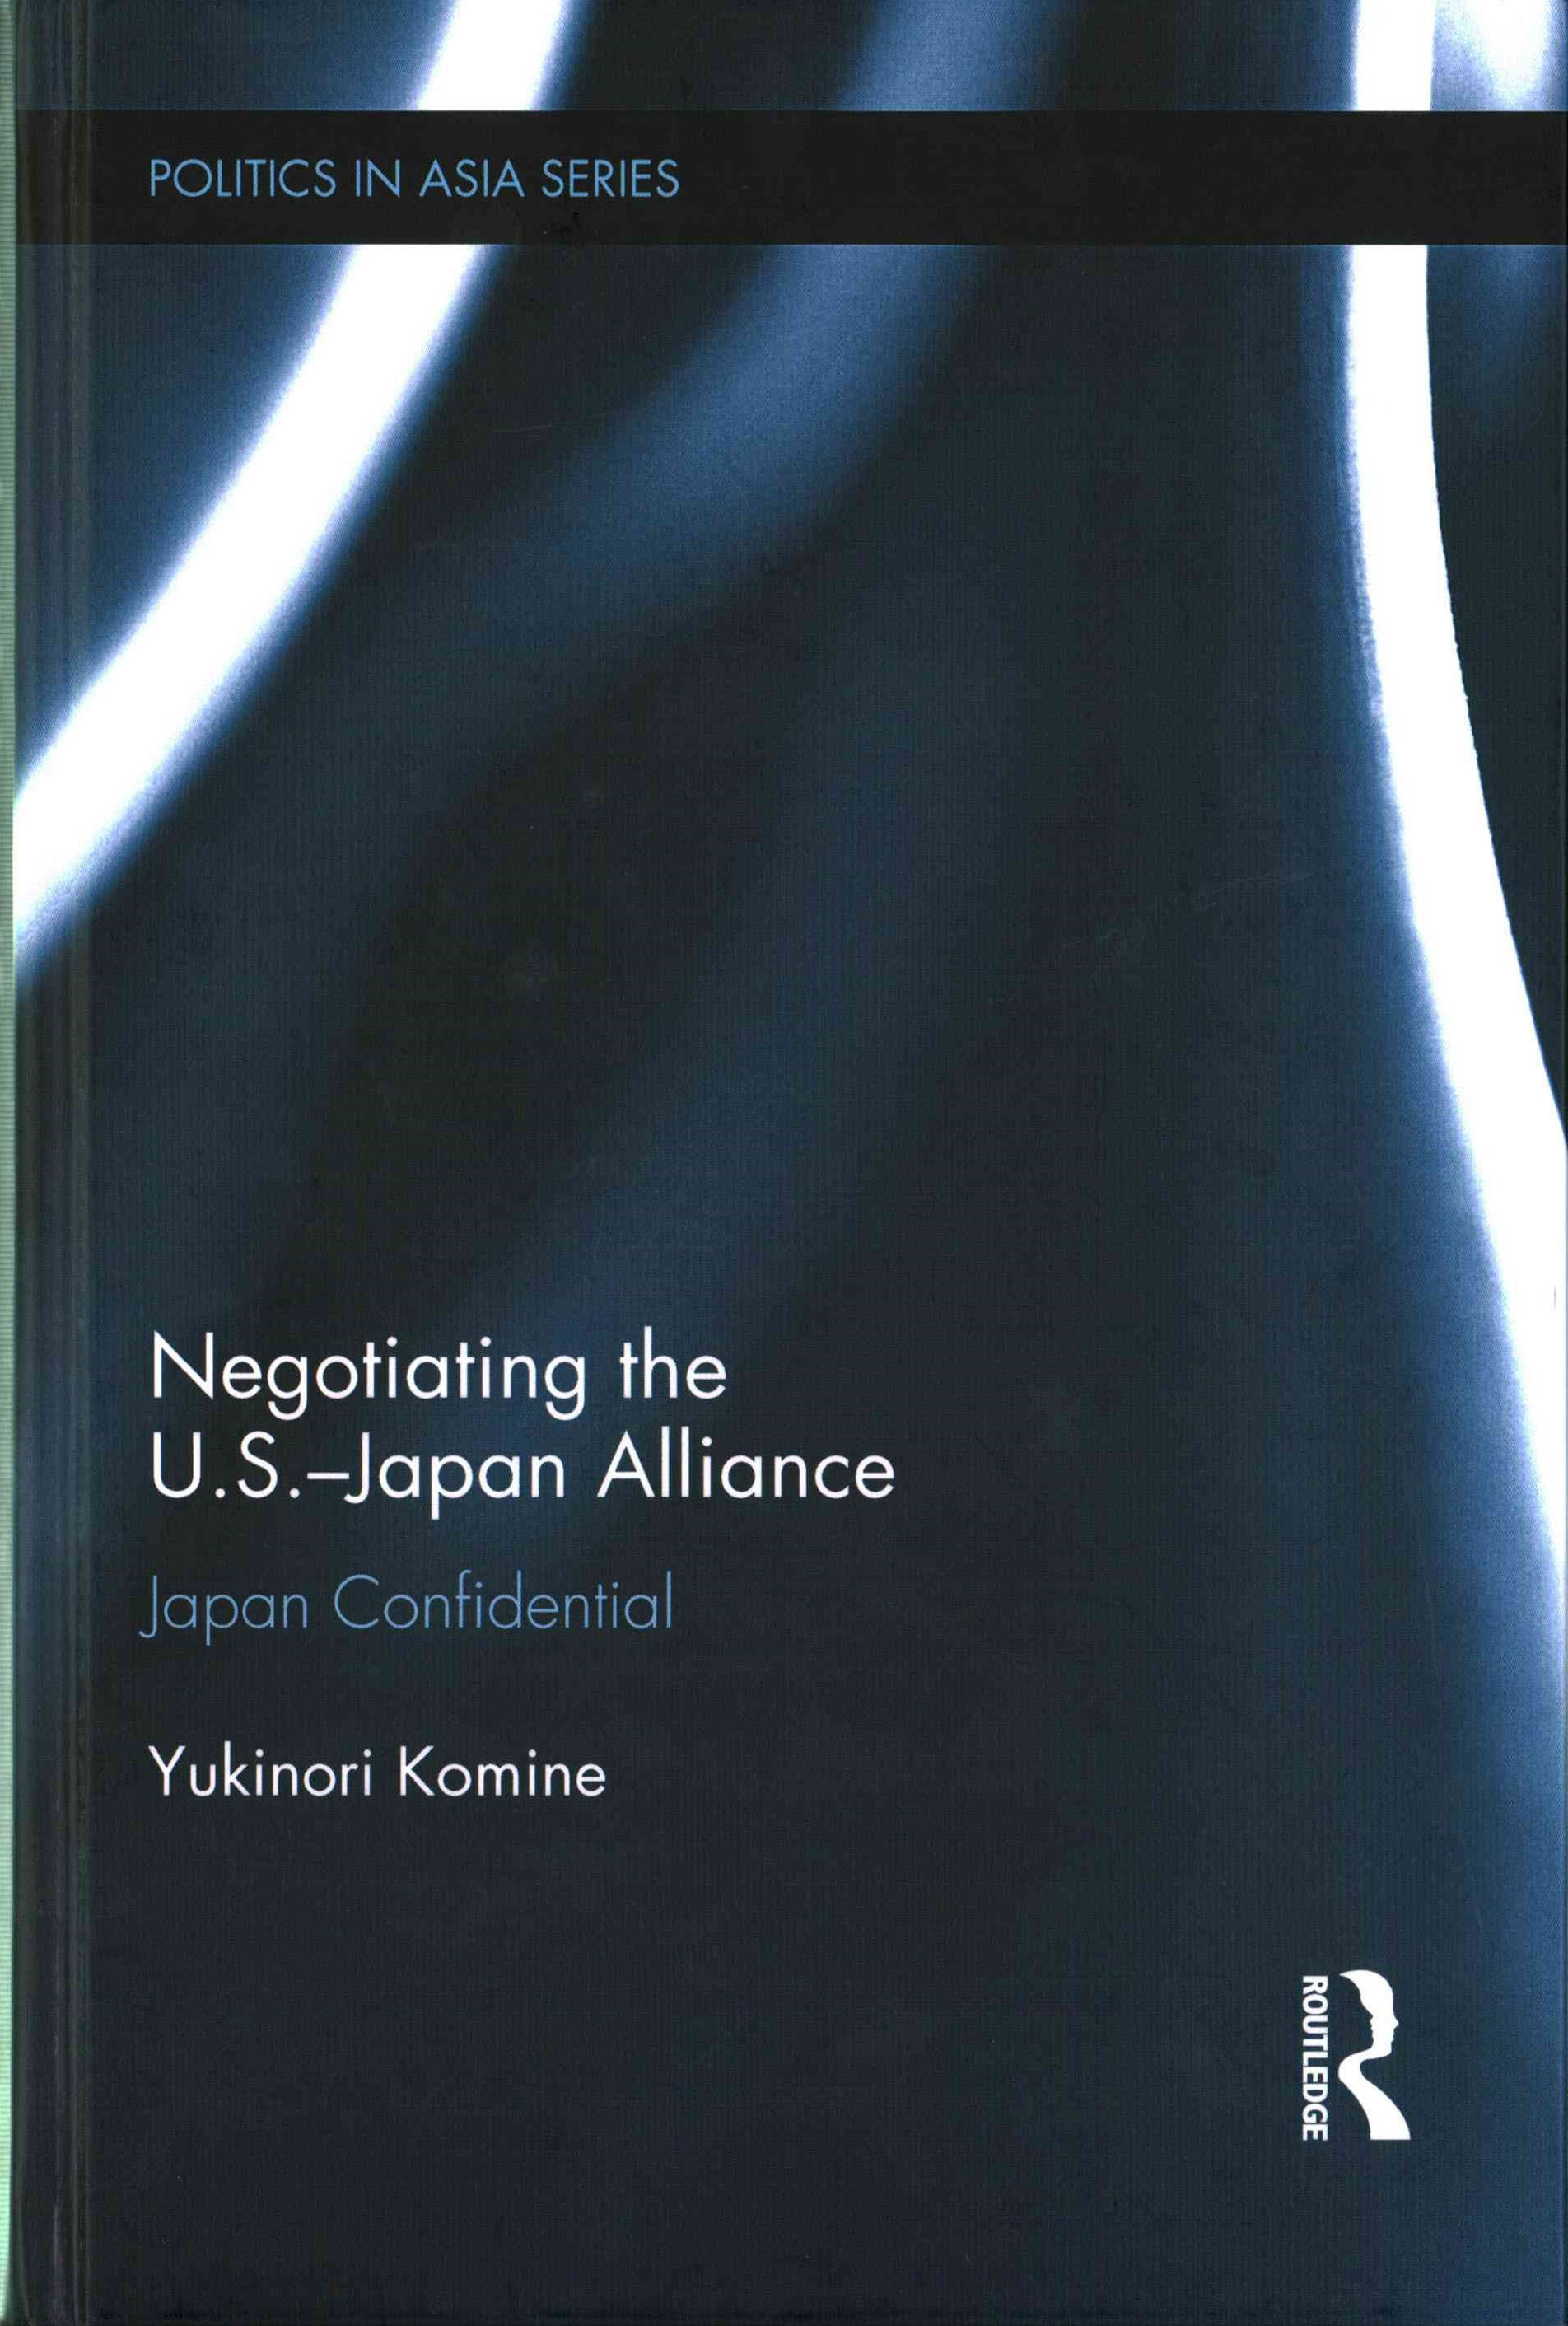 Negotiating the U.S.-Japan Alliance